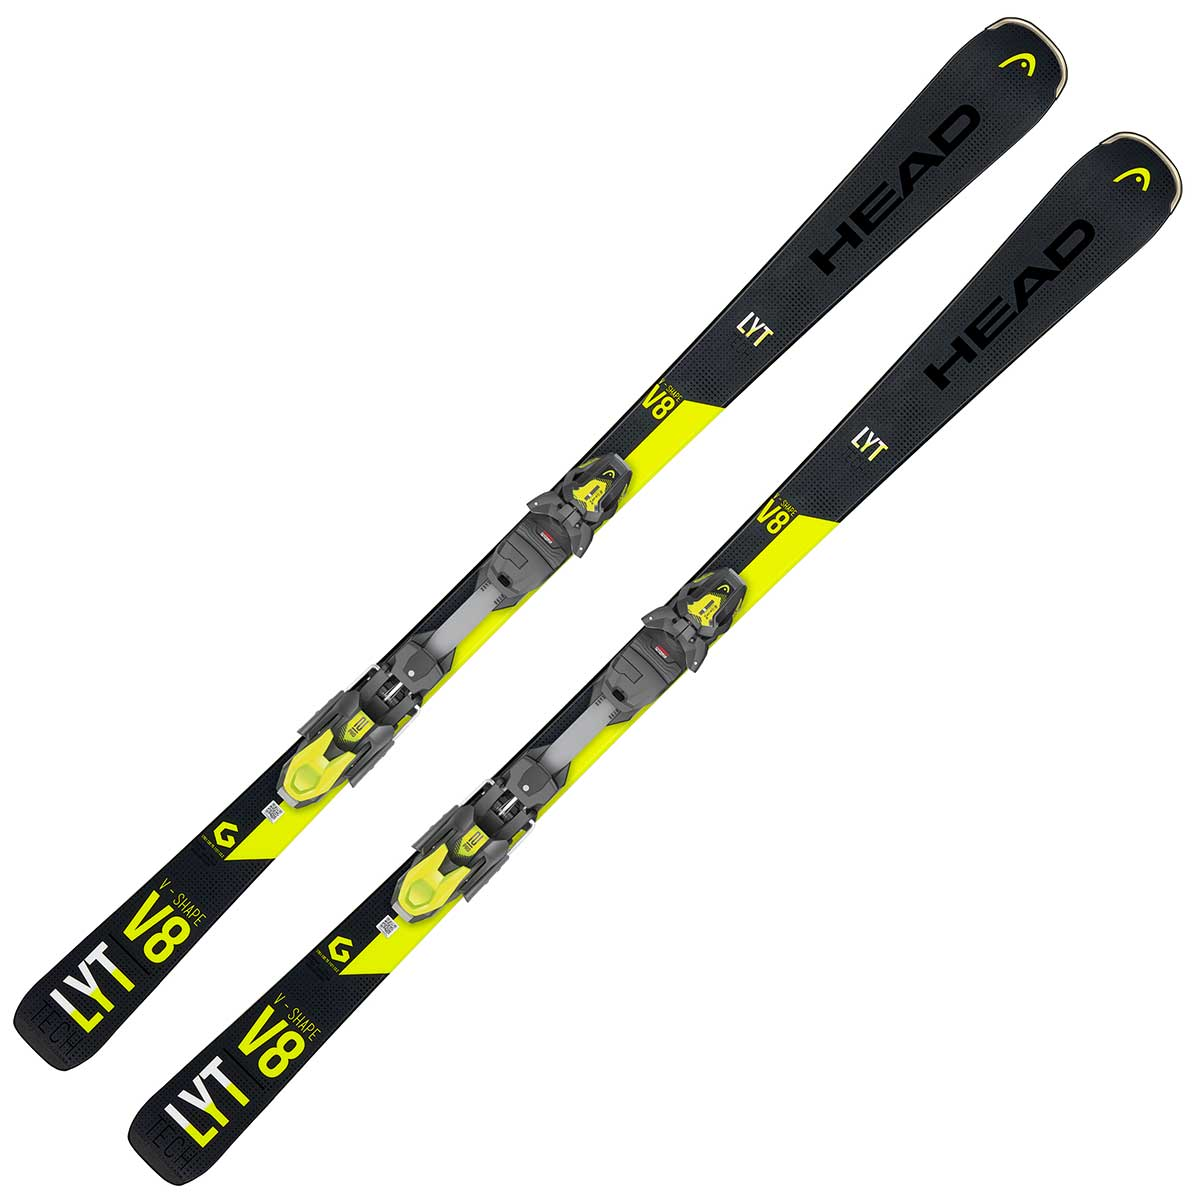 Head V-Shape V8 system ski in black and yellow